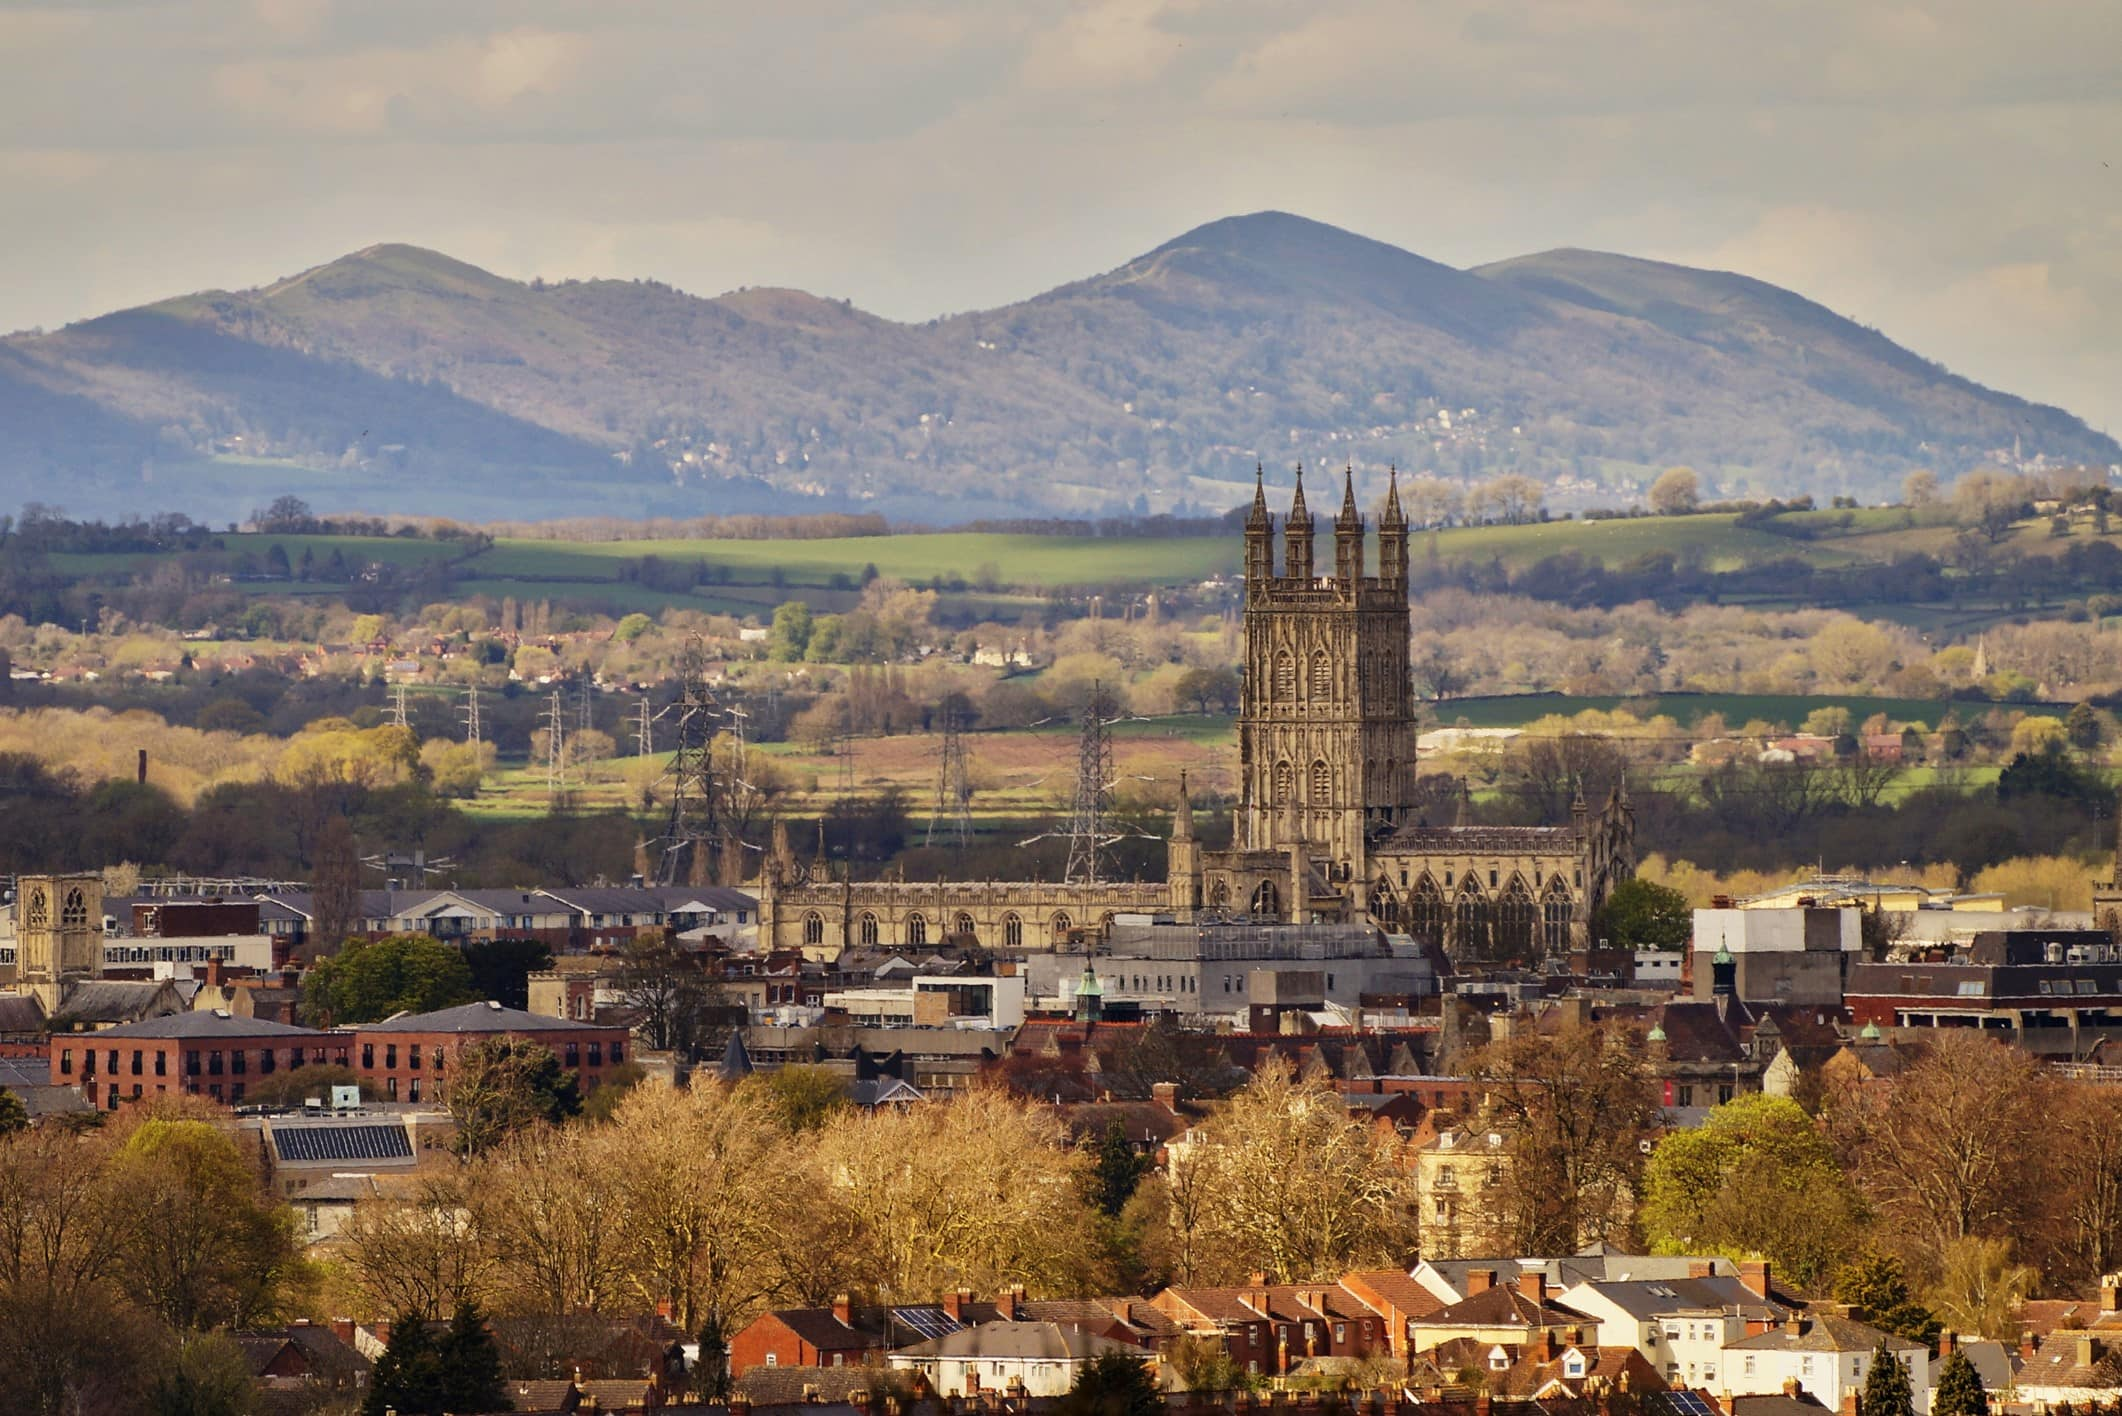 Skyline view of Gloucester, United Kingdom, including the cathedral